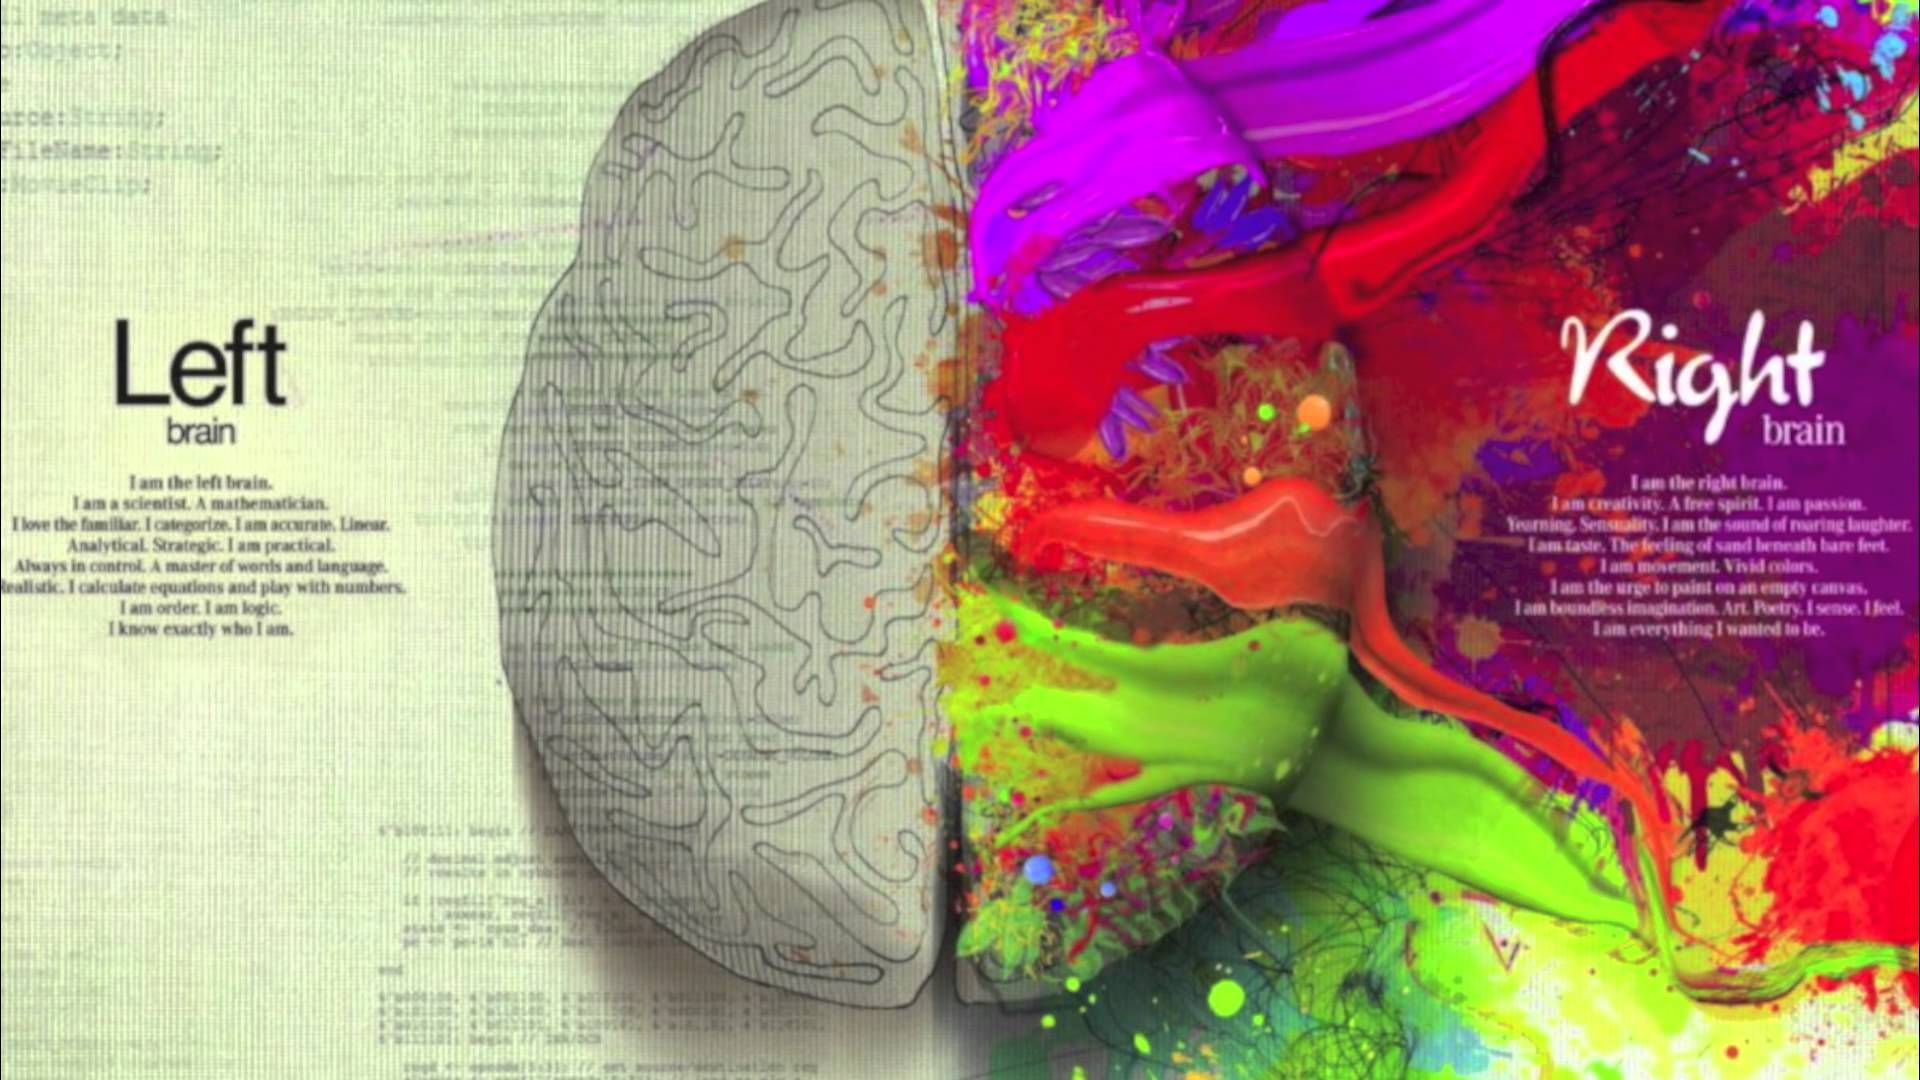 Trends For > Left And Right Brain Wallpapers